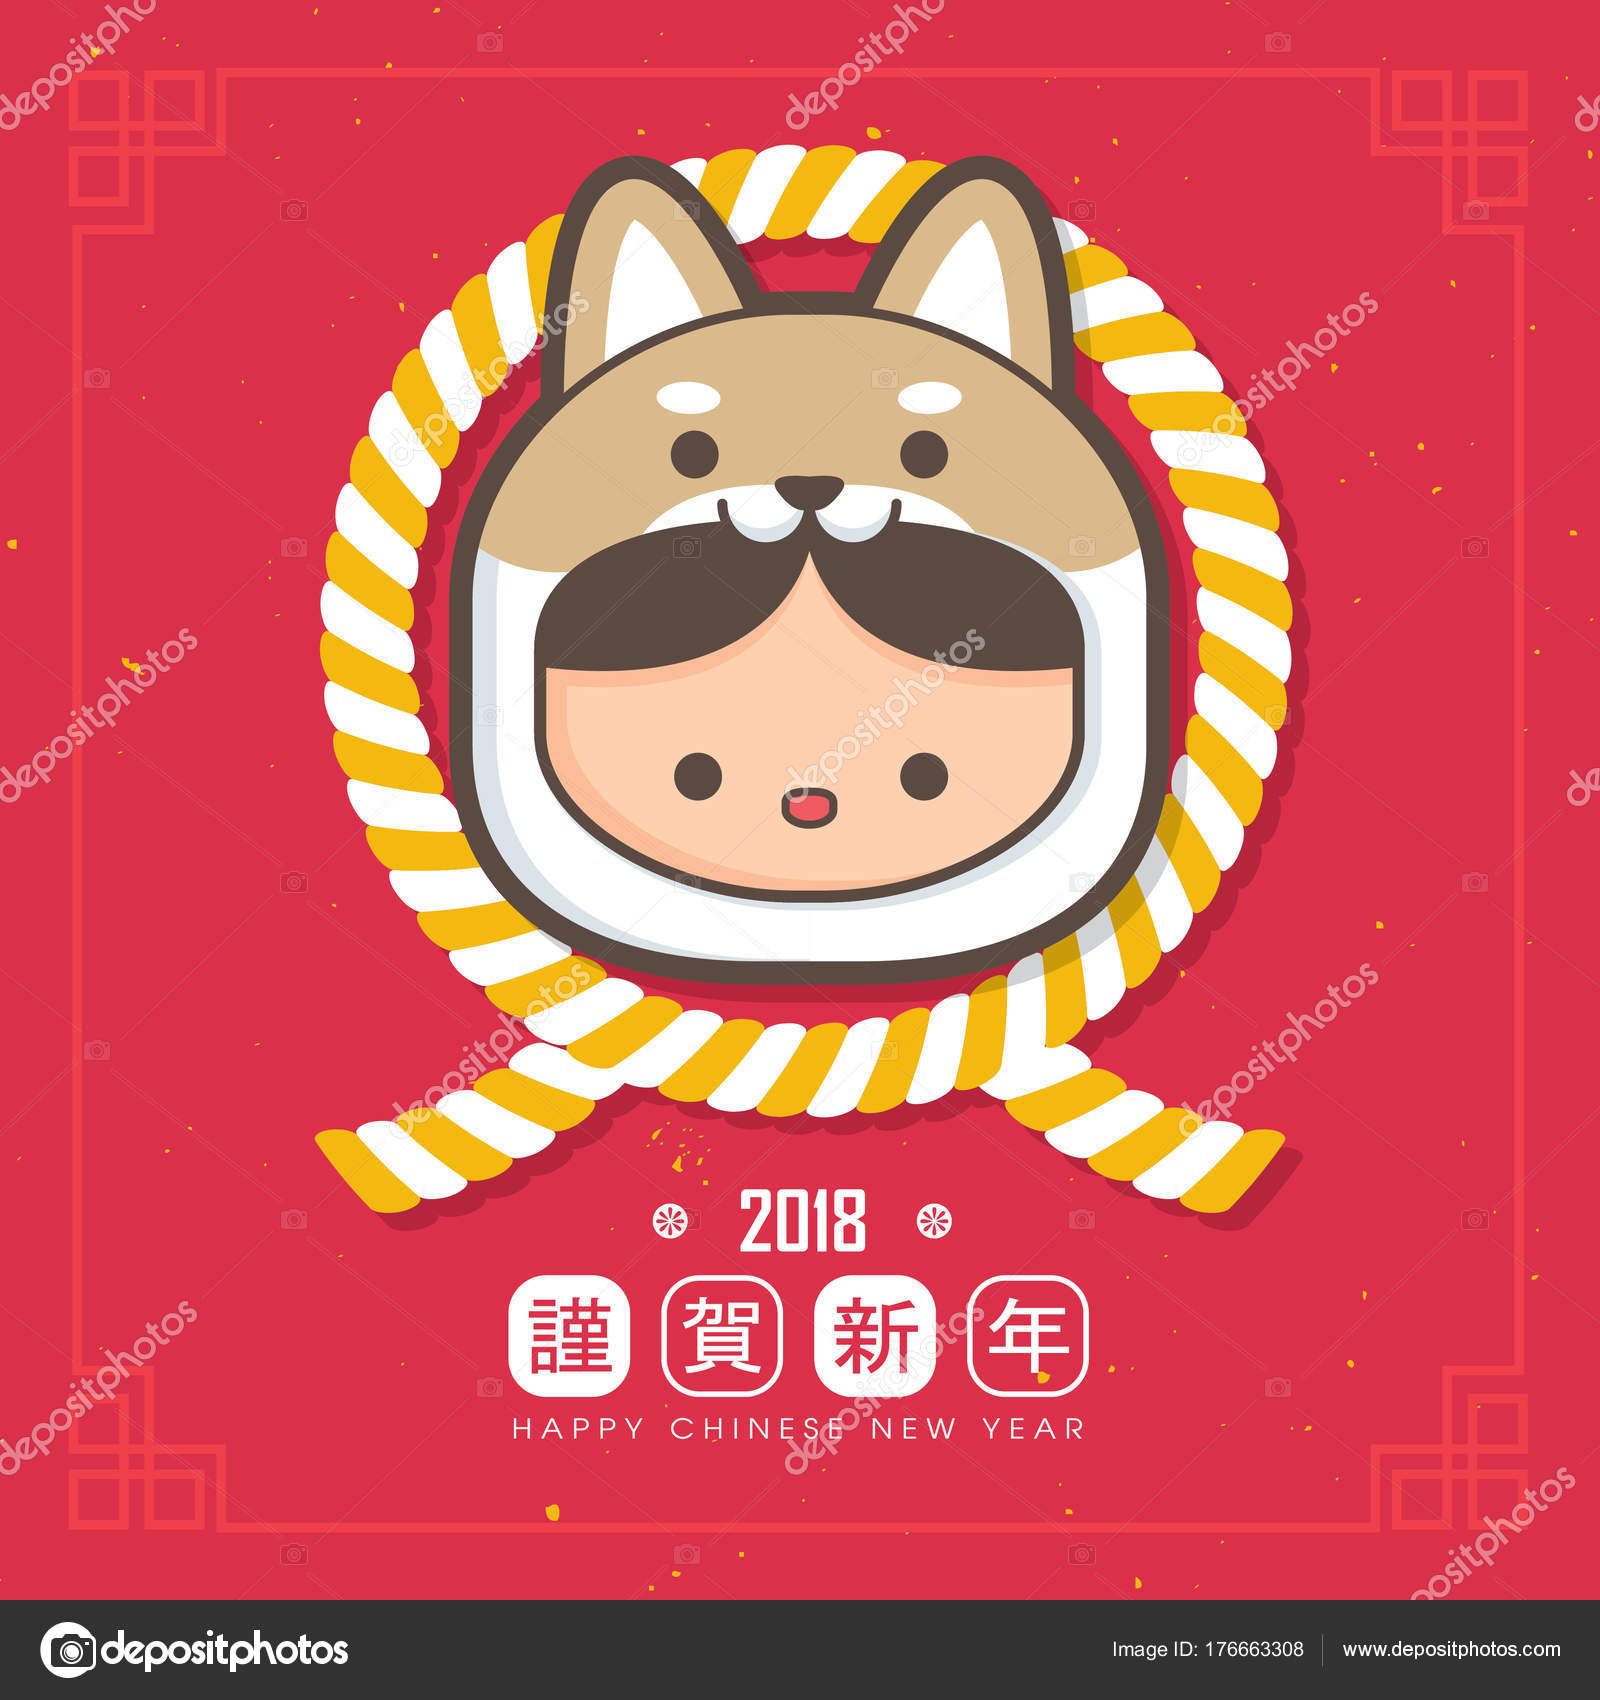 2018 chinese new year year dog greeting card template cute stock vector